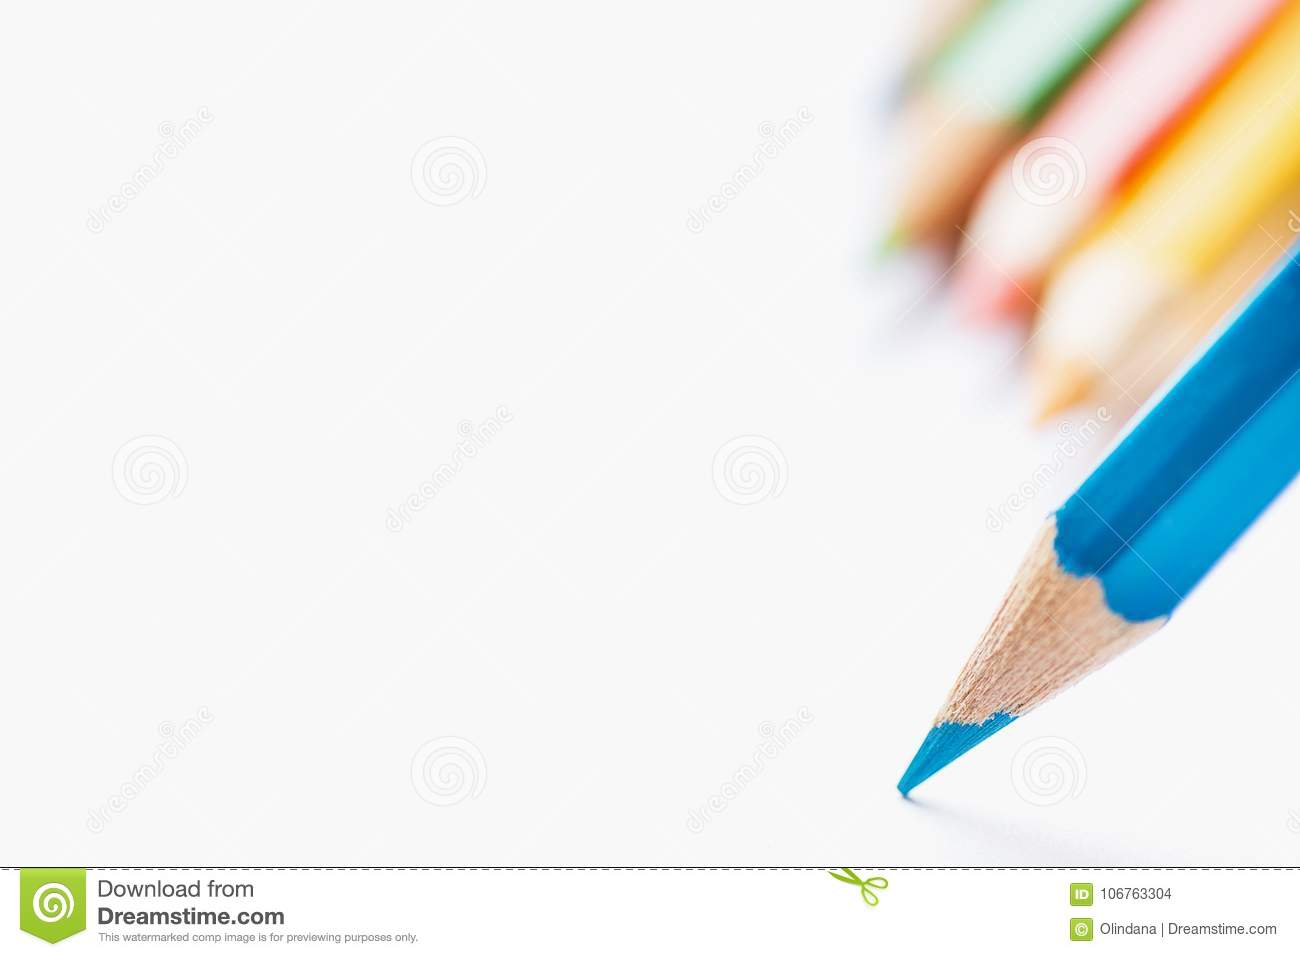 Row of Multicolored Pencils in Background Single Blue Sharp Pencil Pointing with Tip to Blank White Paper. Beginning of Drawing